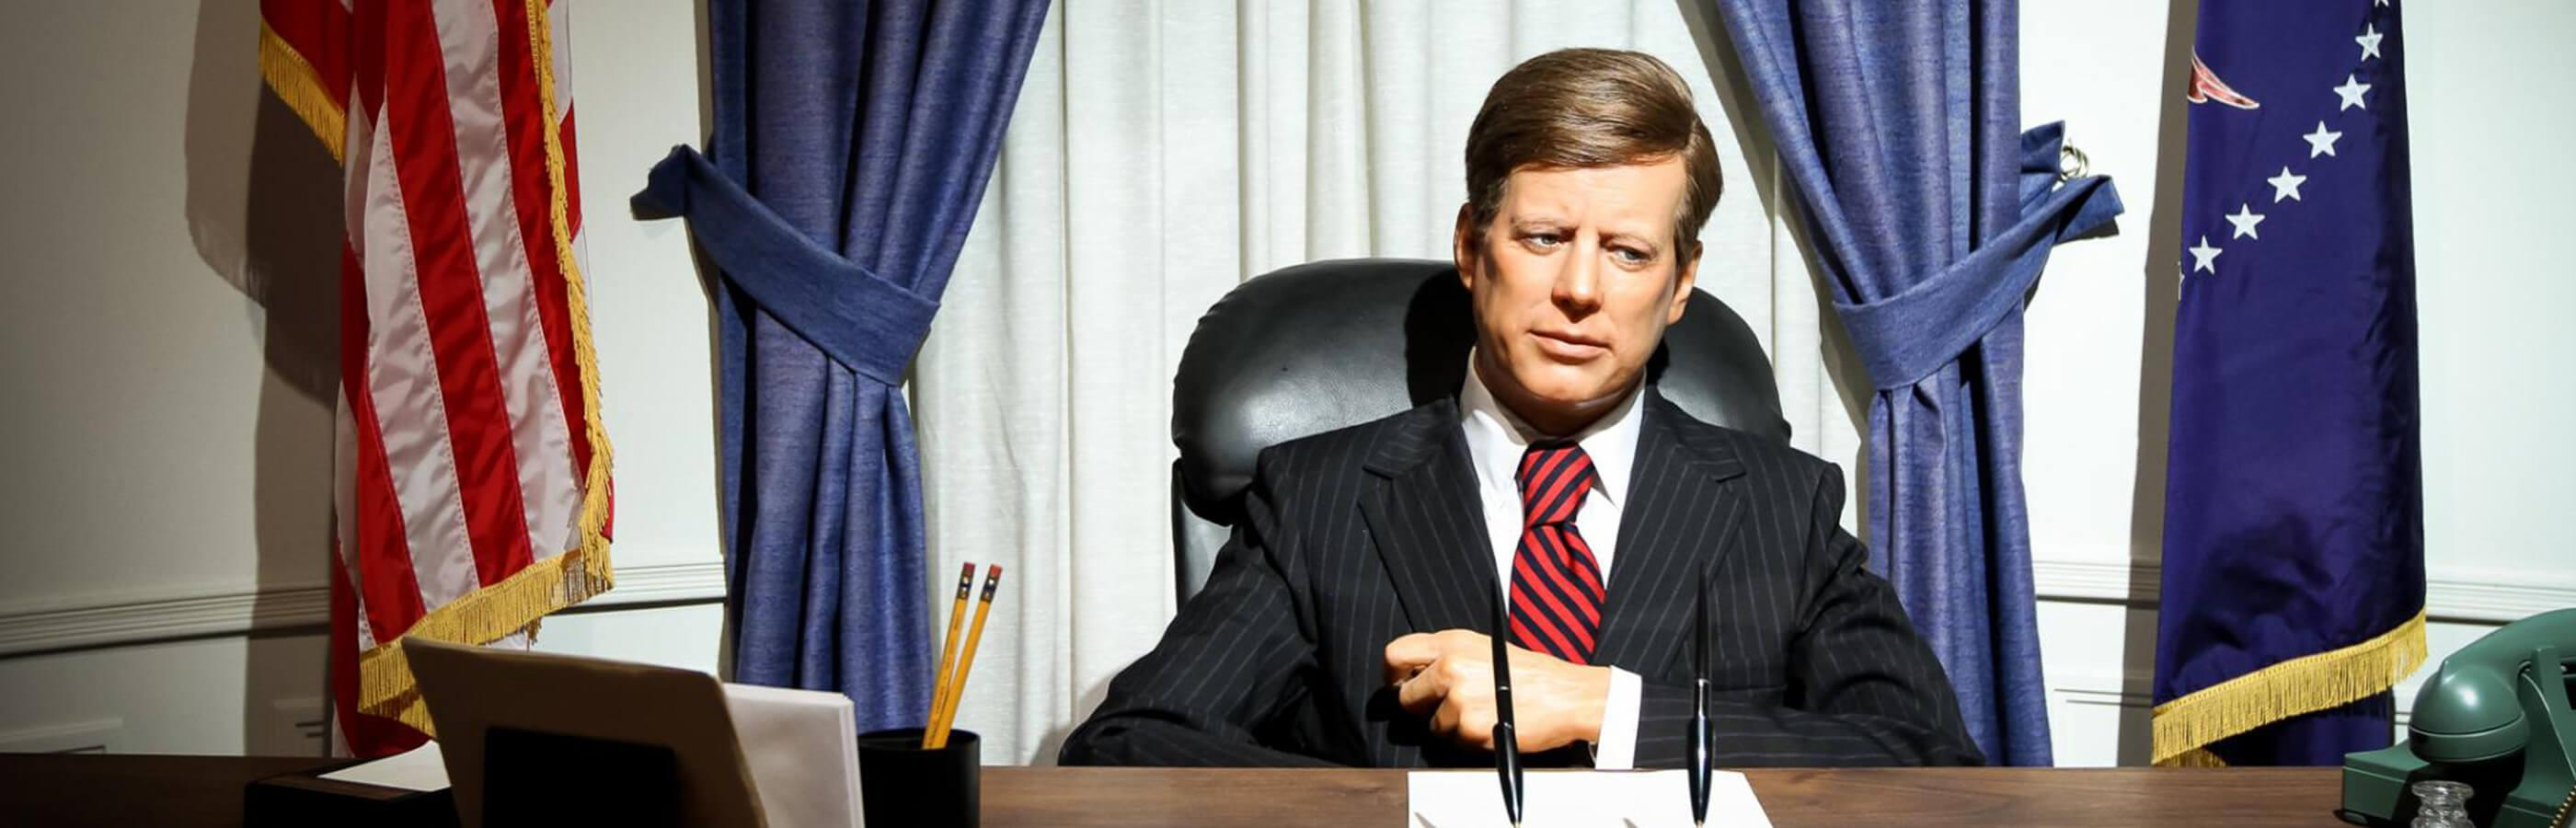 President Kennedy Made Of Wax